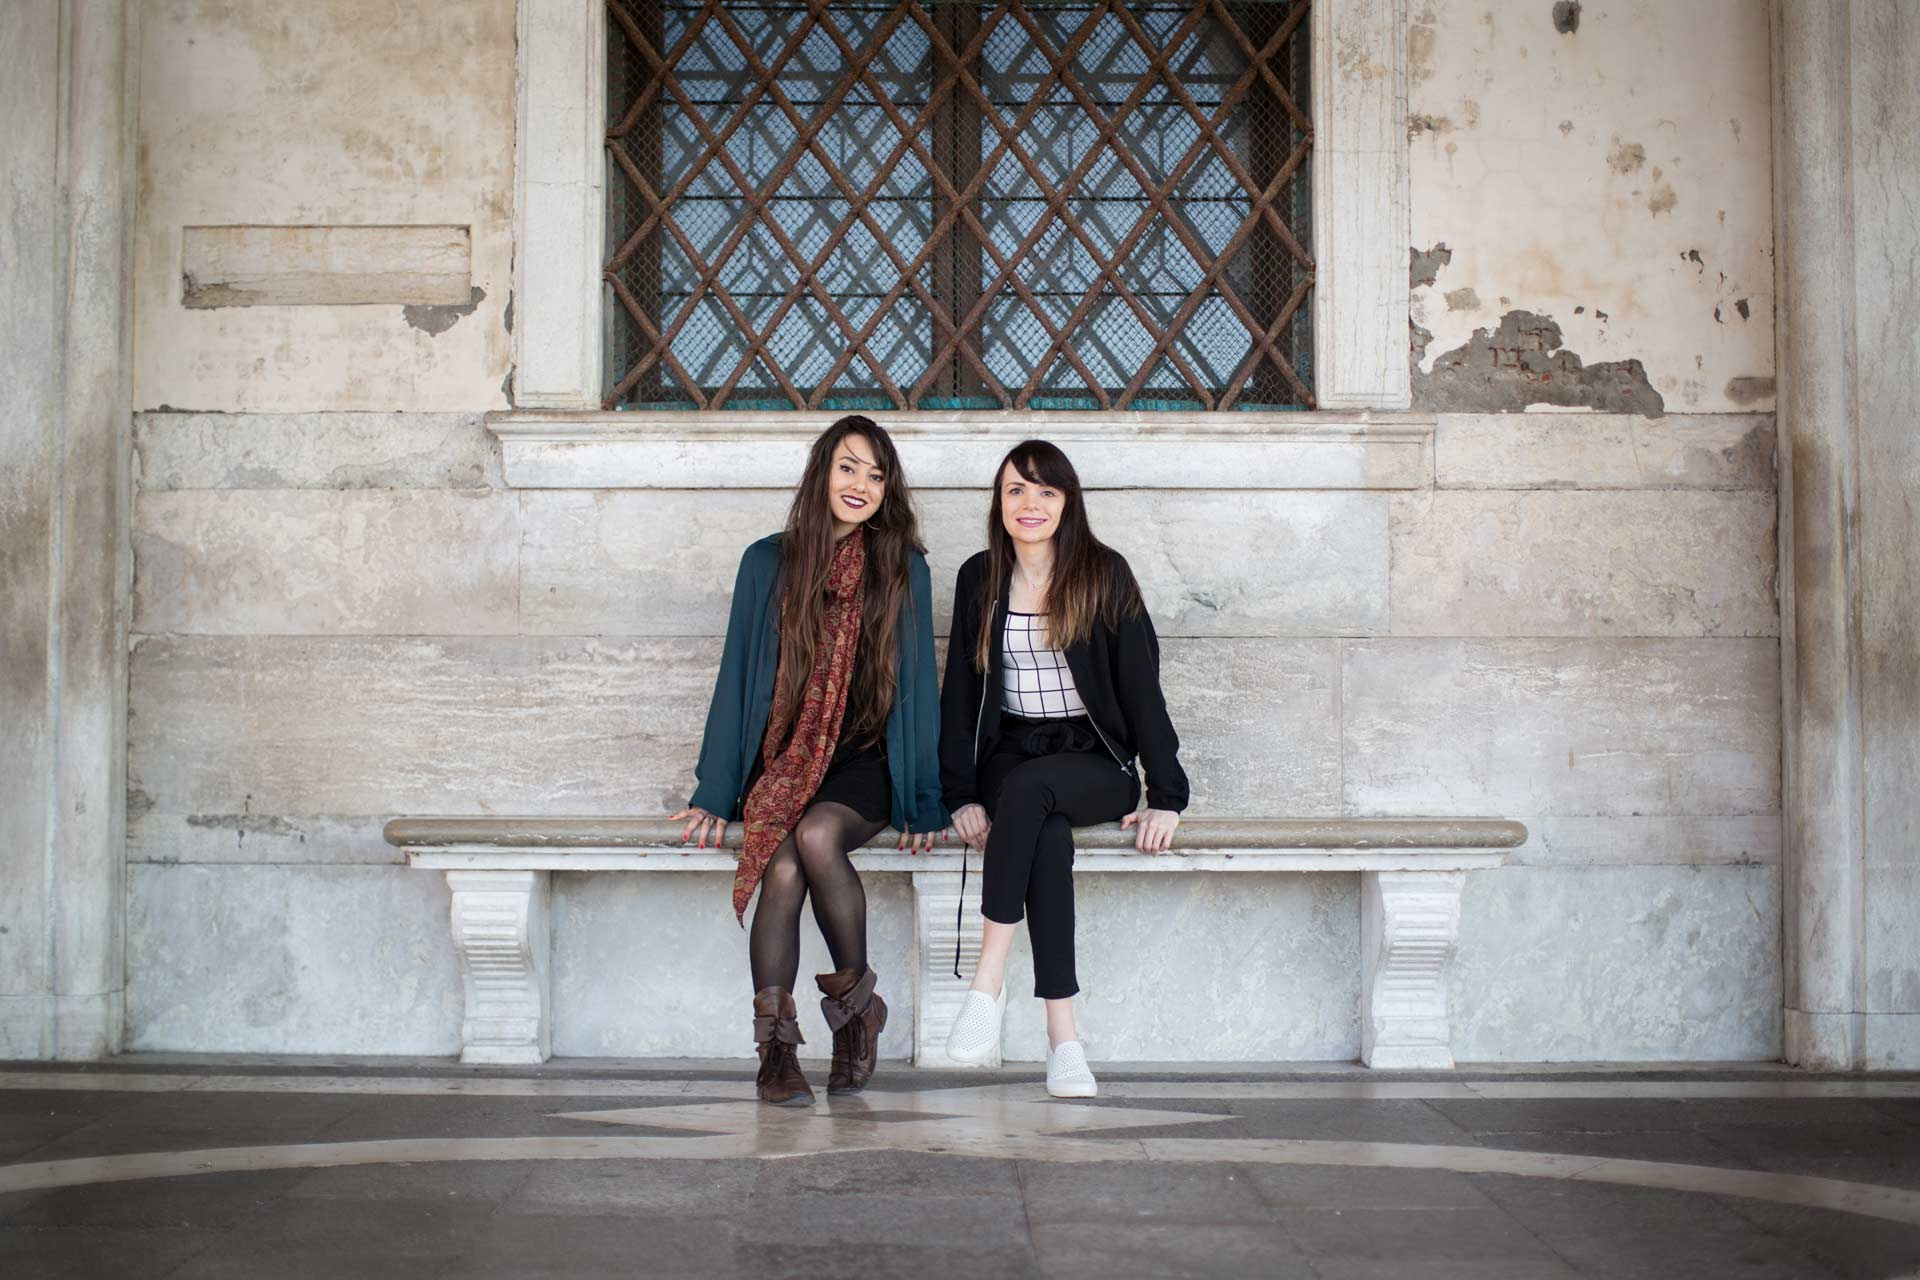 Ashley-Meagan-portrait-photo-shooting-sunrise-palazzo-ducale-Venezia-Venice